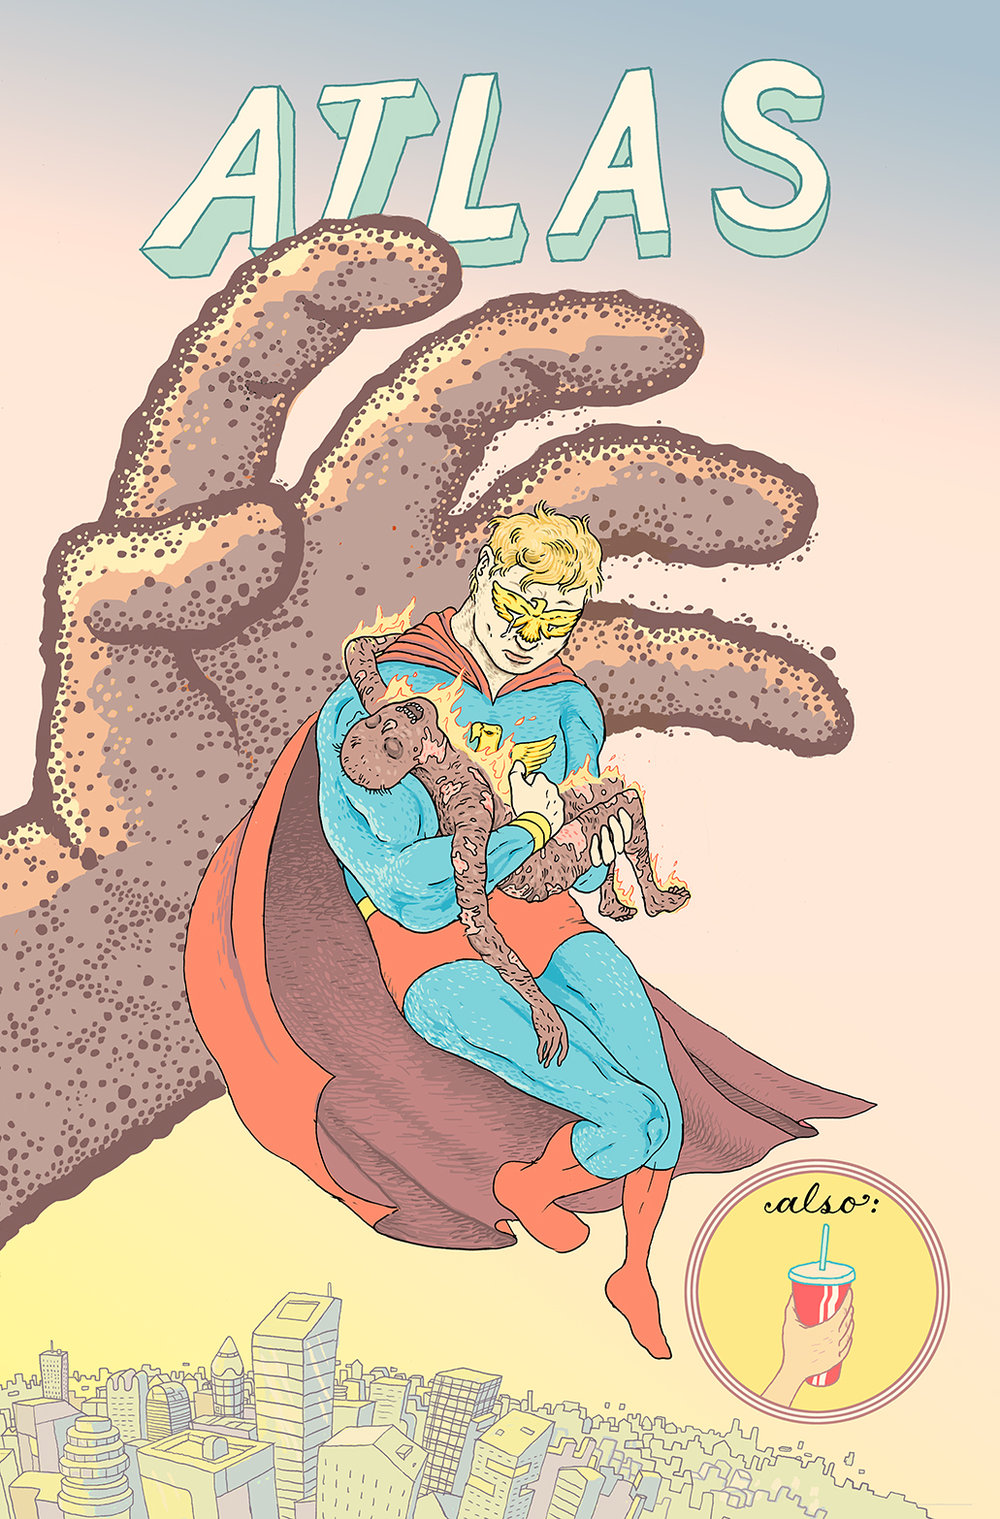 Josh Bayer asked me to do a cover for one of a new line of over-the-top, campy and fever-dreamy superhero comics he's editing at Fantagraphics. It's called All Time Comics, and one of the books is about a Superman-style character called Atlas. The story is, like I said bananas. The art is by Ben Marra and Matt Rota and is truly inspired. And I got to pretend I was Alan Davis doing a Marvelman cover. Thanks to Josh and Jason Miles for roping me in.